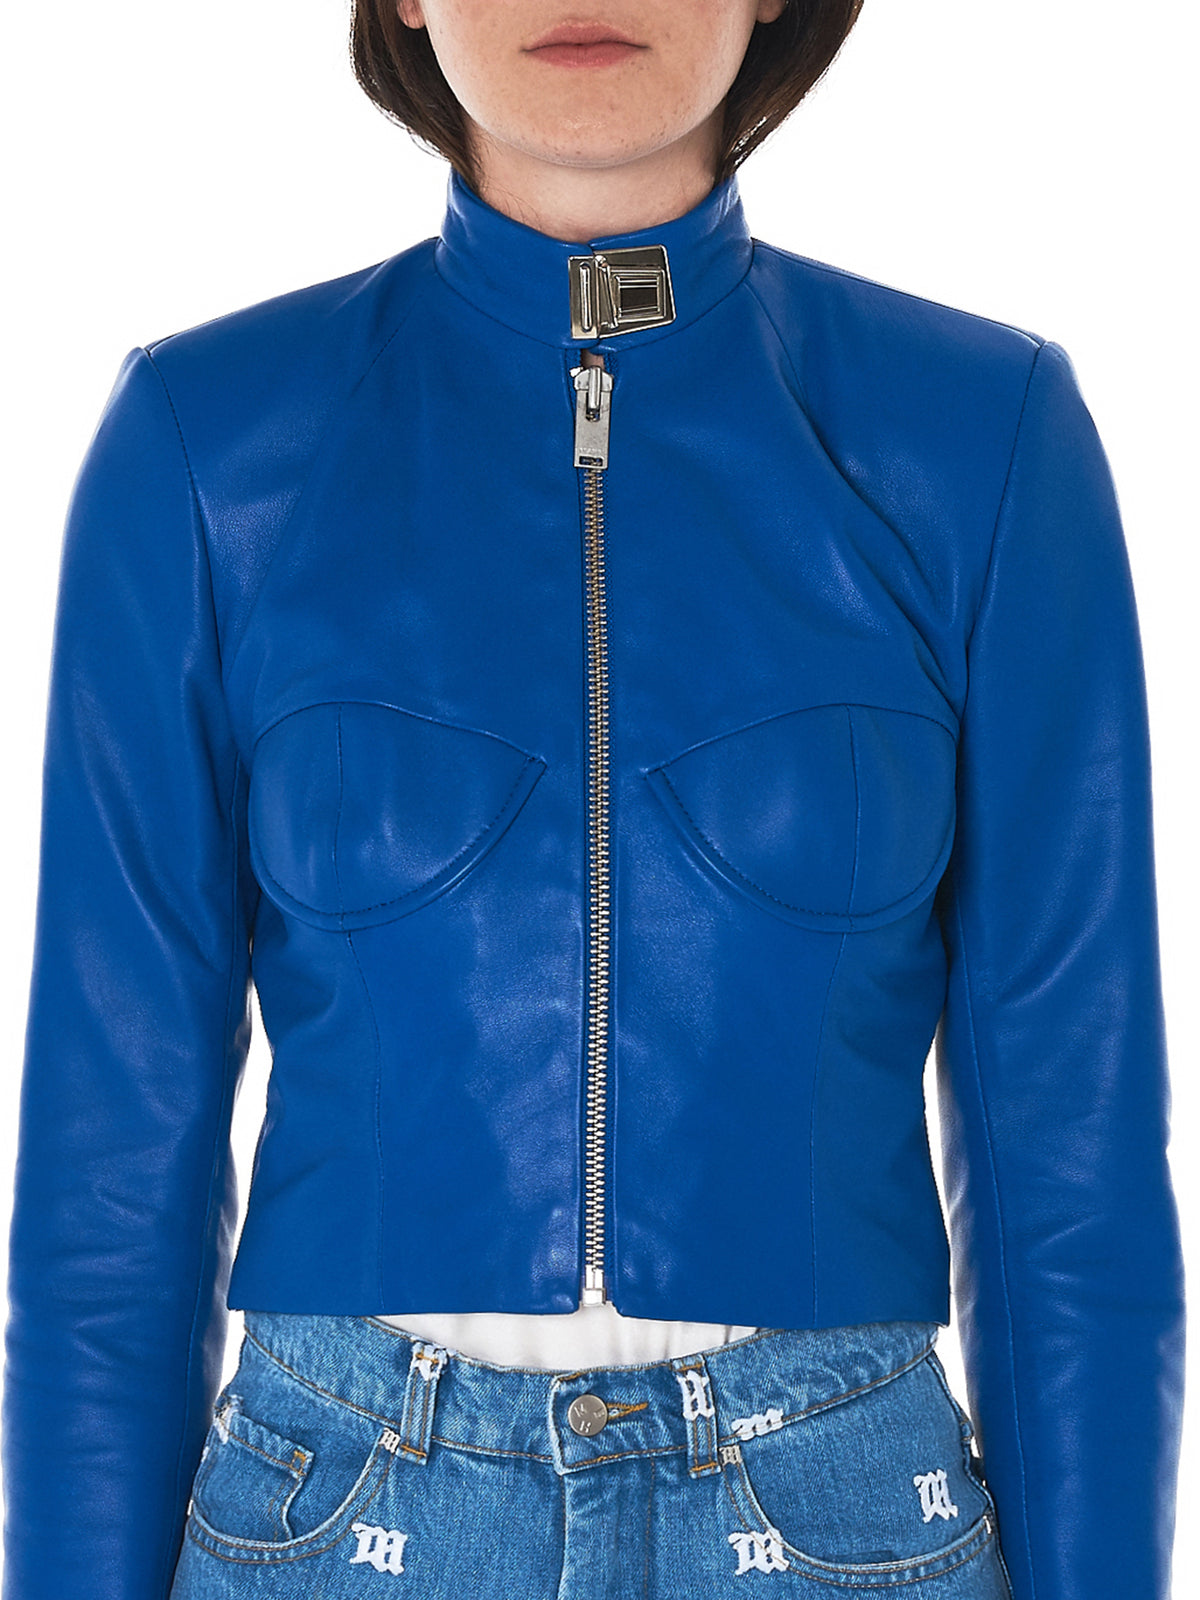 MISBHV blue leather jacket- H.Lorenzo collar detail